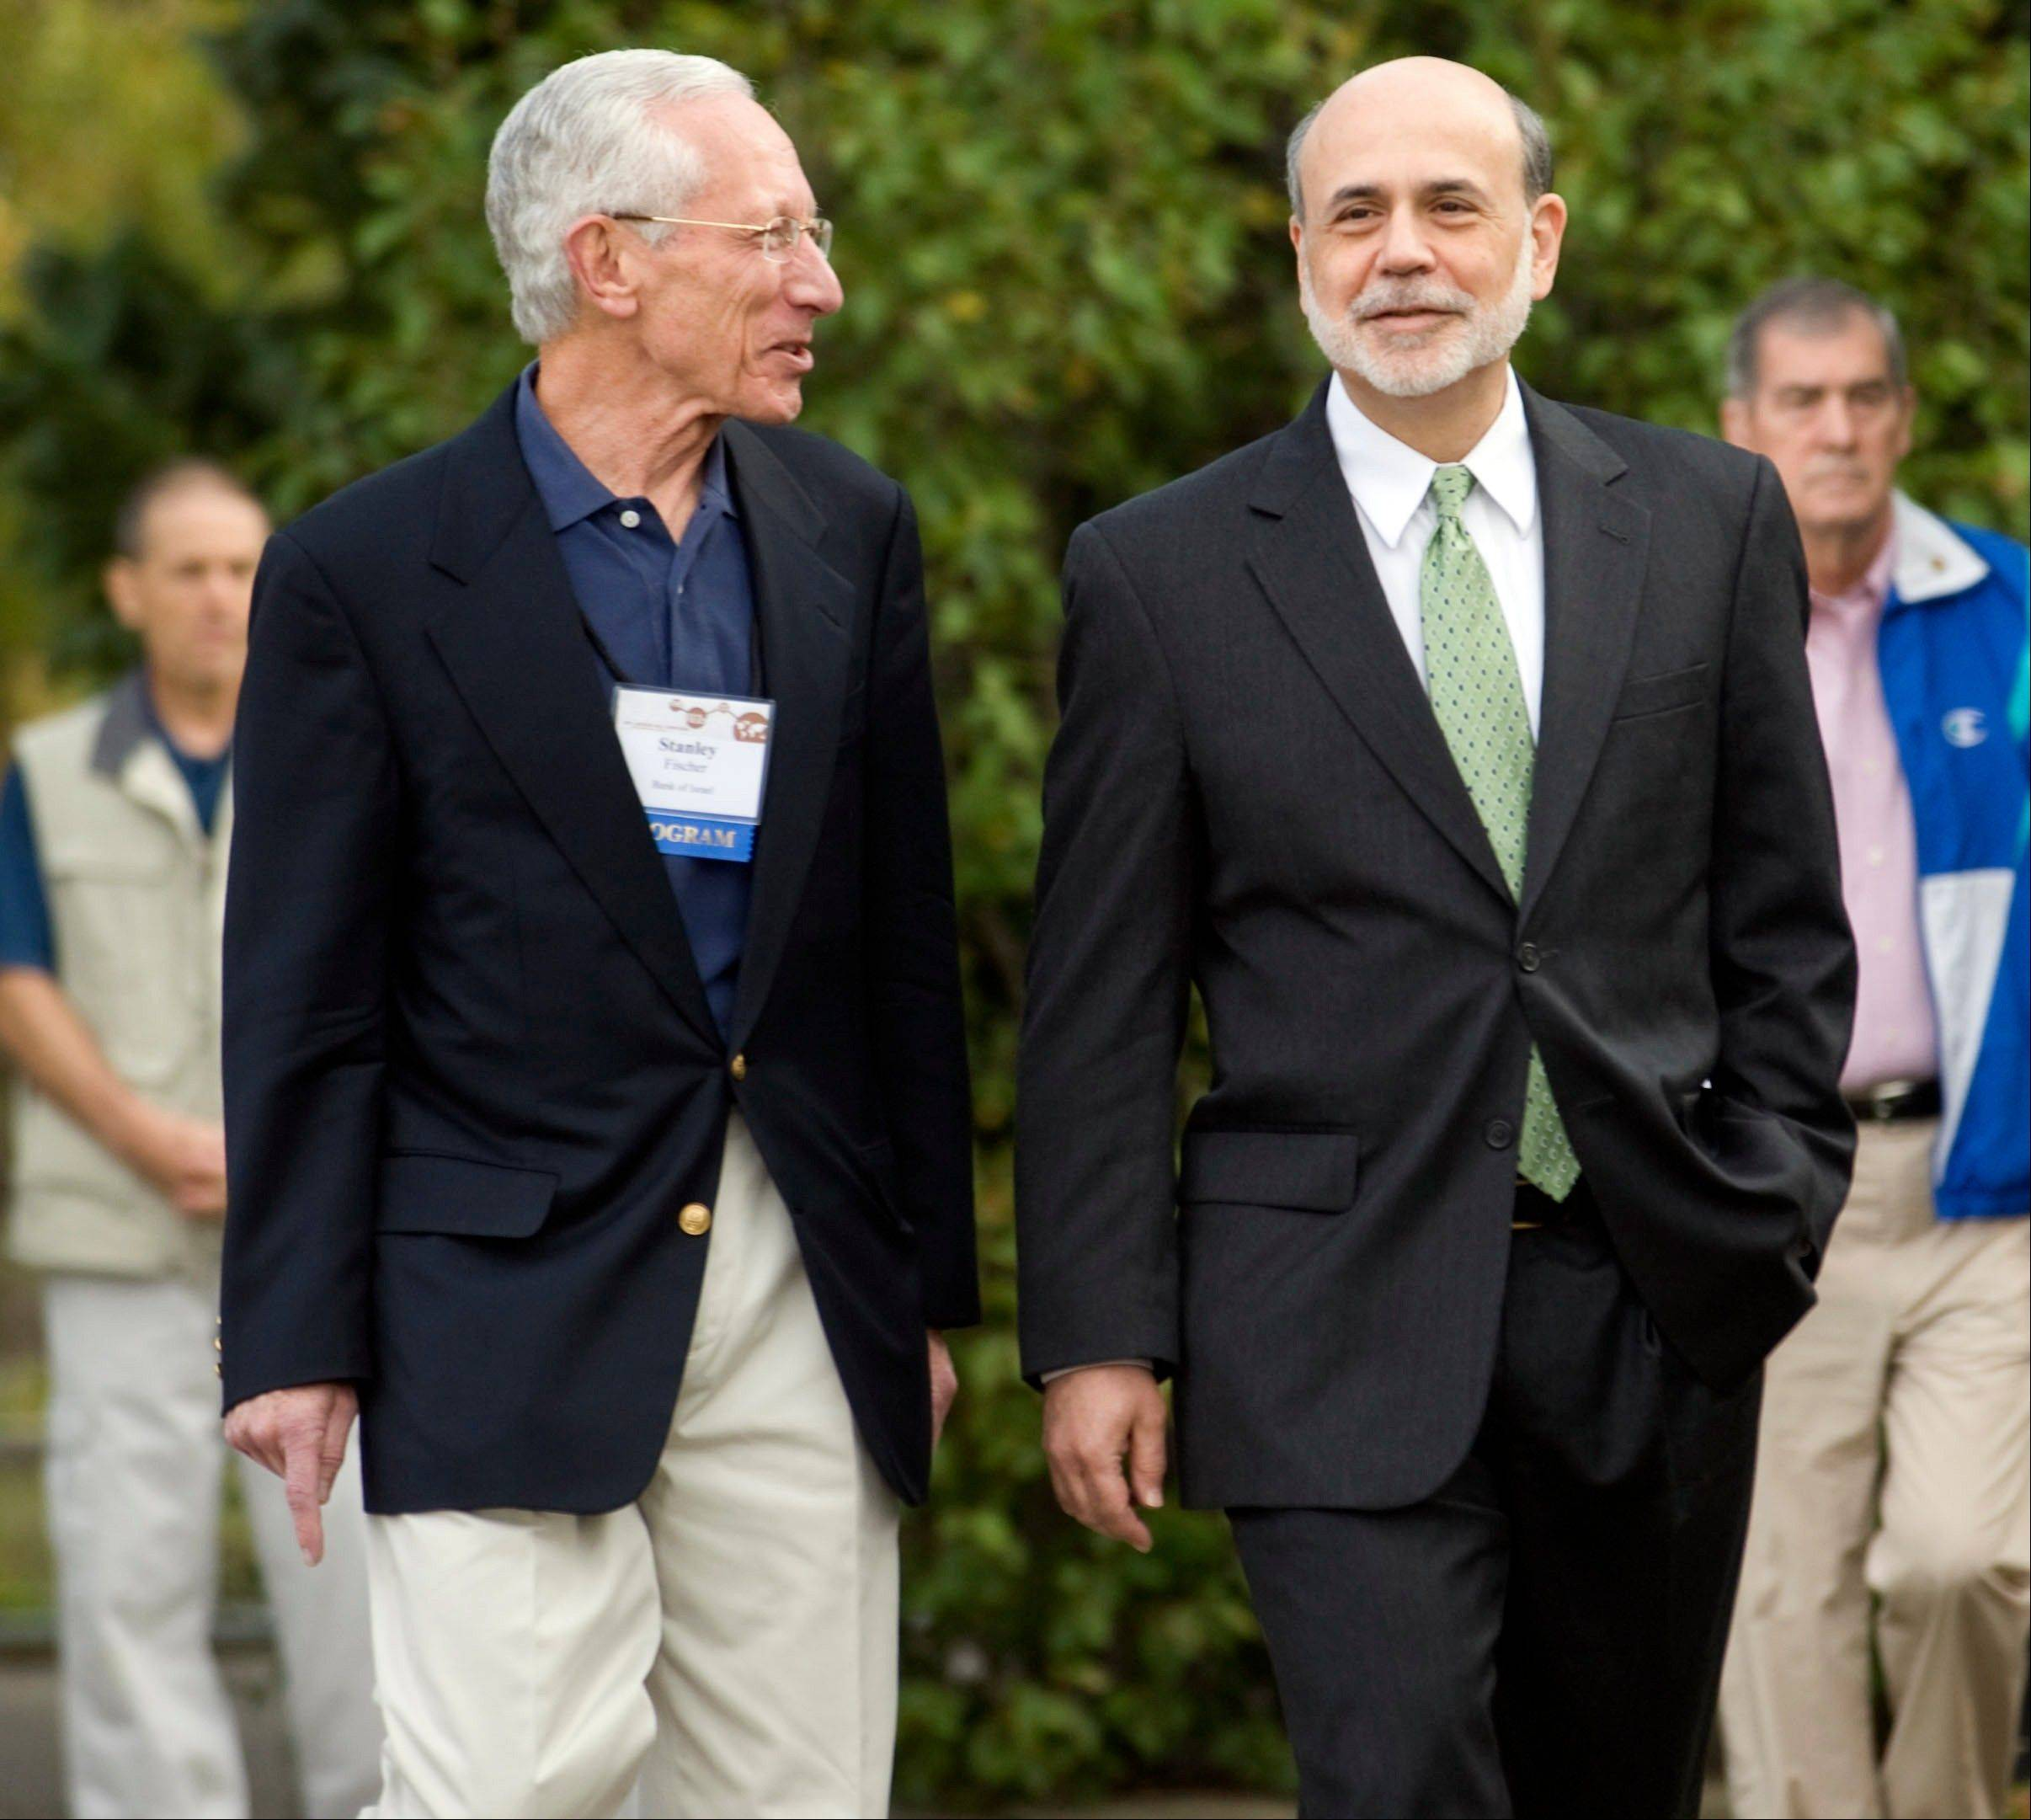 Ben S. Bernanke, chairman of the U.S. Federal Reserve, right, walks with Stanley Fischer, governor of the Bank of Israel, at the Jackson Hole economic symposium sponsored by the Kansas City Federal Reserve Bank at the Jackson Lake Lodge in Moran, Wyoming, U.S., on Friday, Aug. 31, 2012.